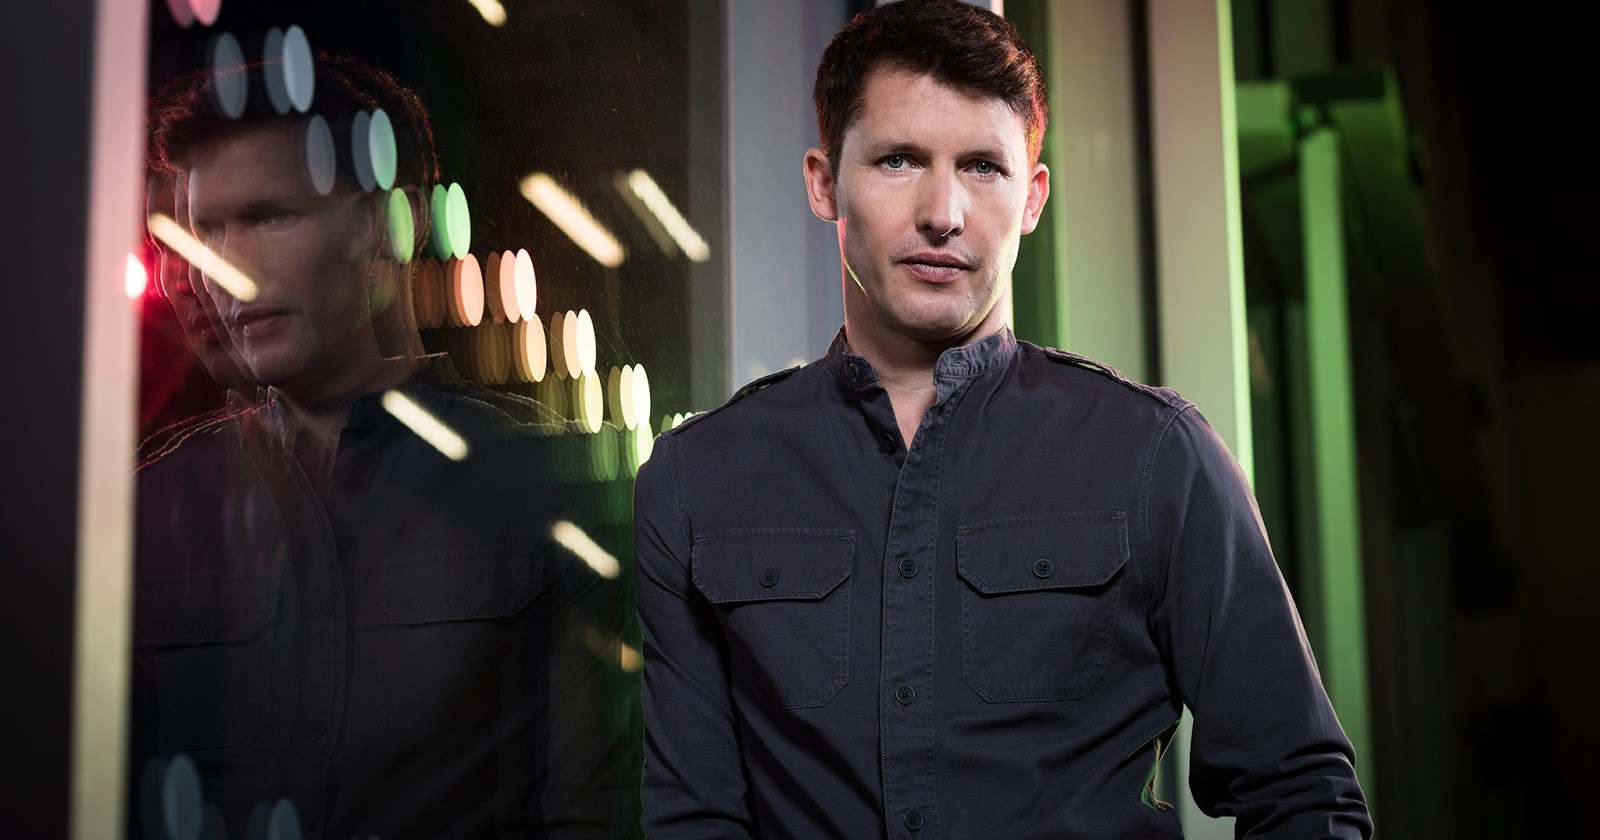 Venue change for James Blunt's debut show in Malaysia